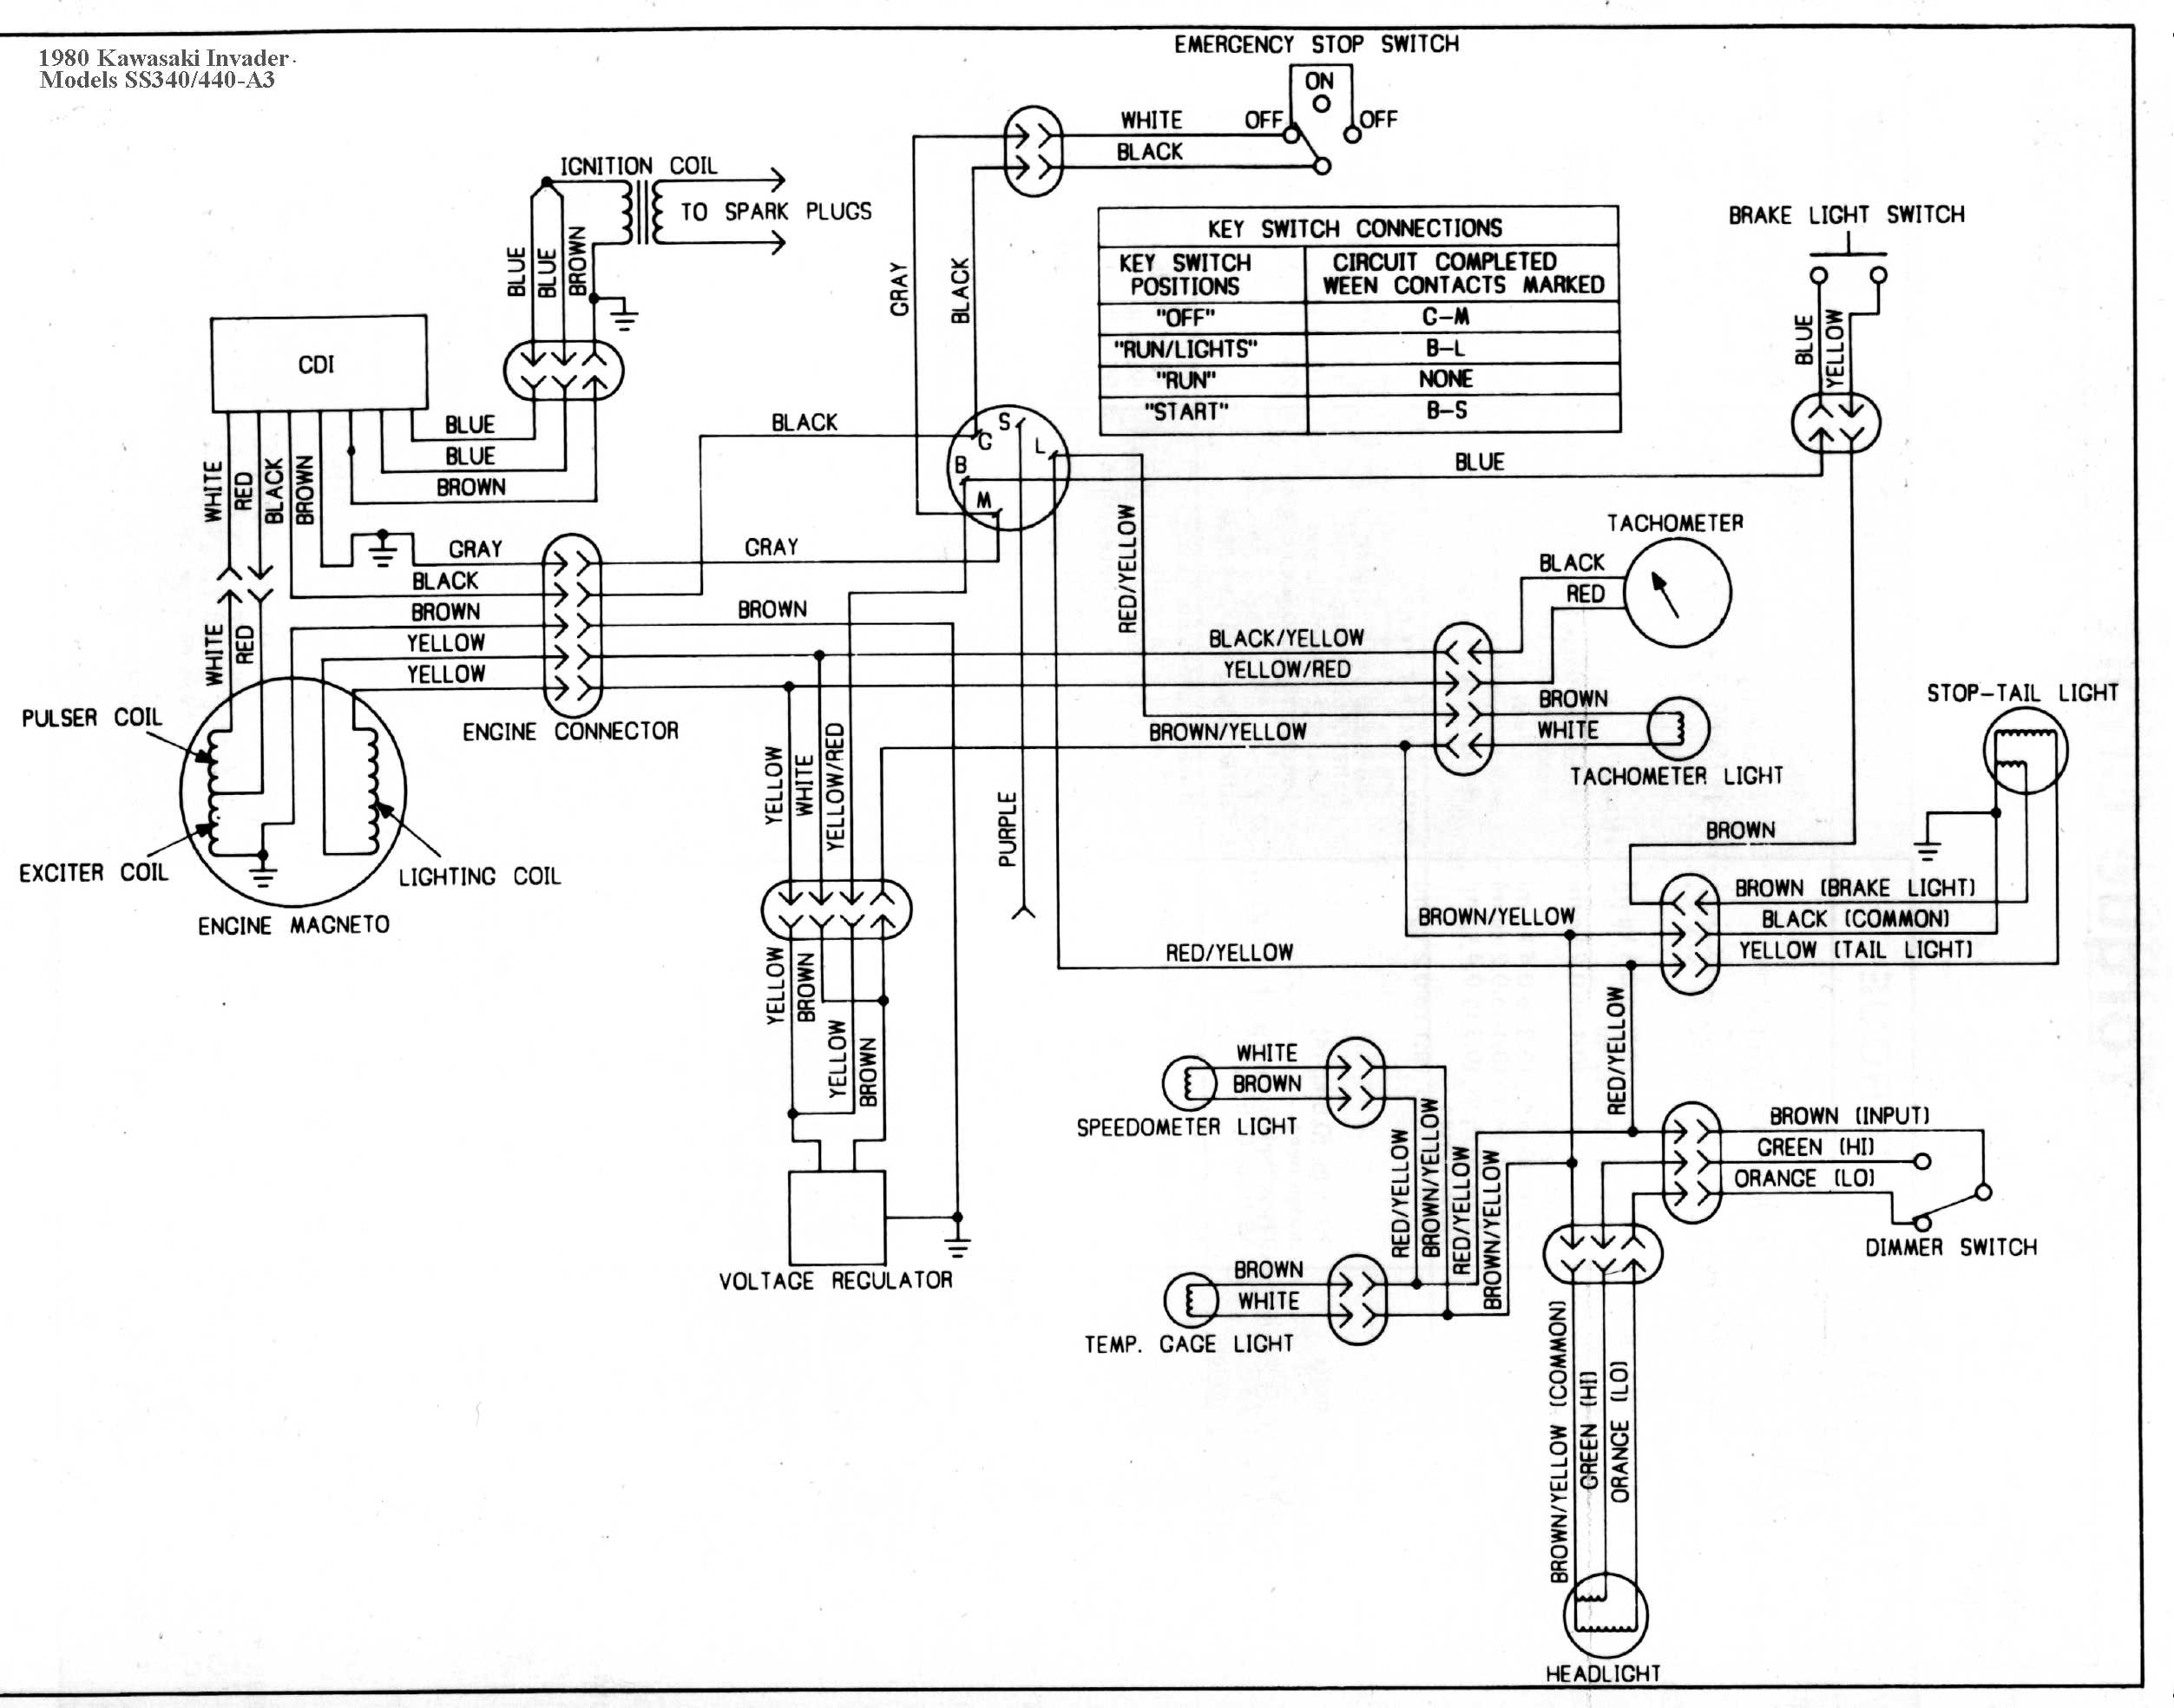 164c For A Kawasaki 440 Ltd Wiring Diagram